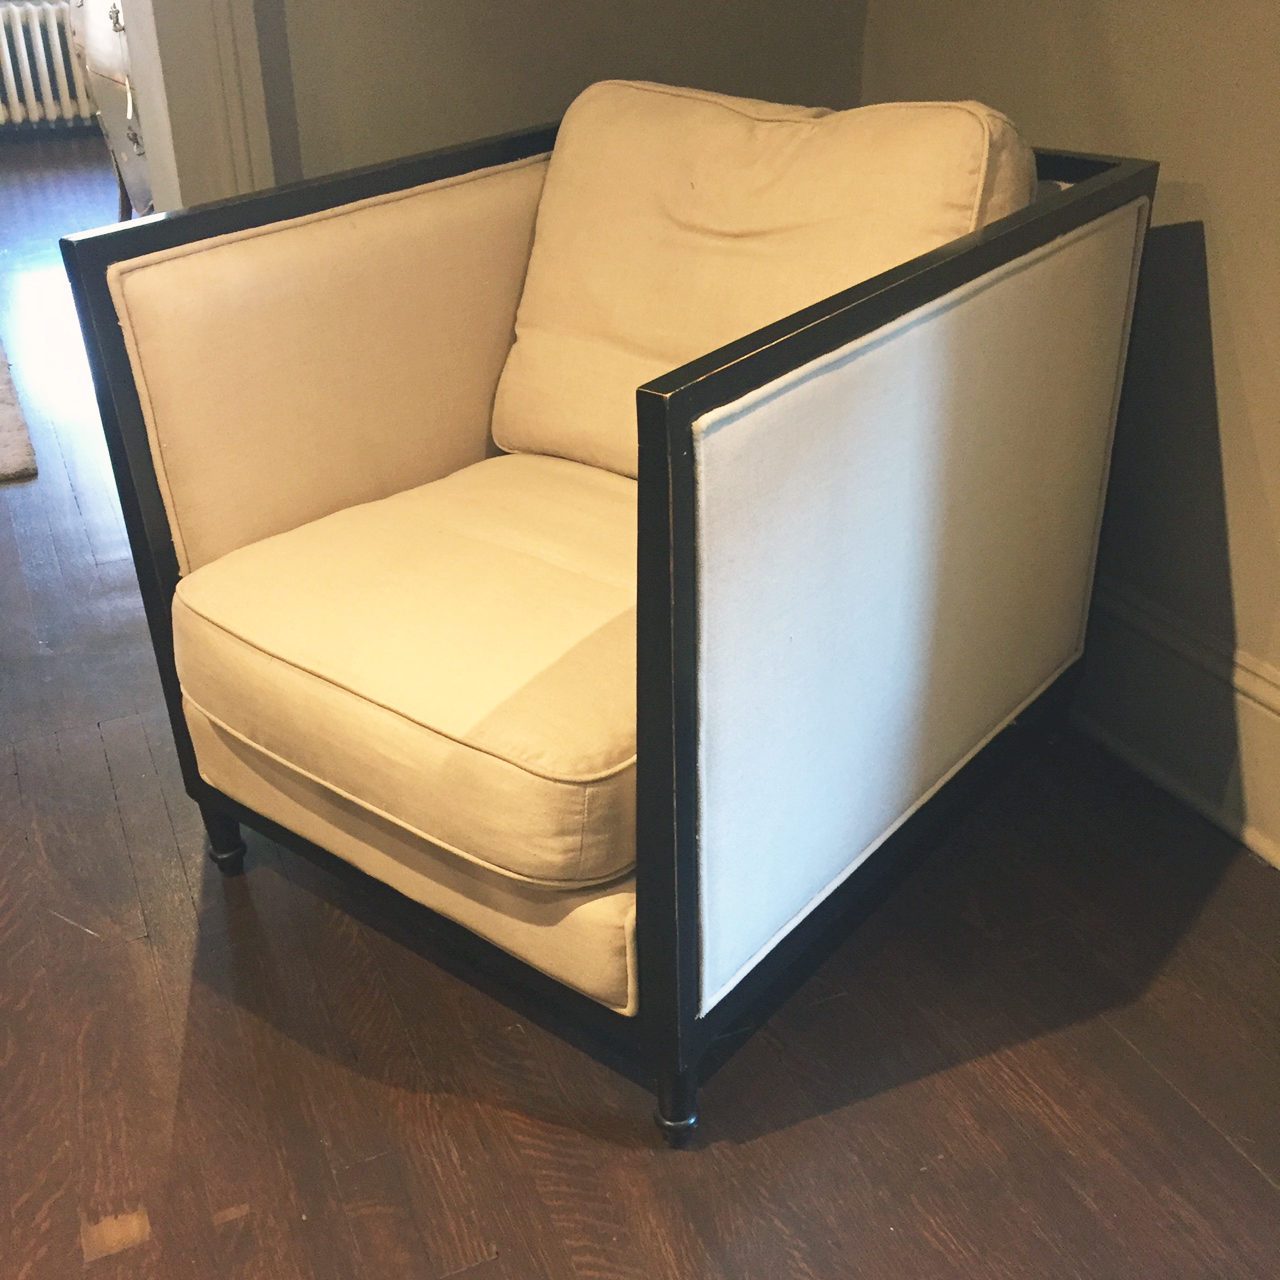 Tulon Chair  Originally $1,180  As is $900  Linen and Black Laquer with Down Cushions